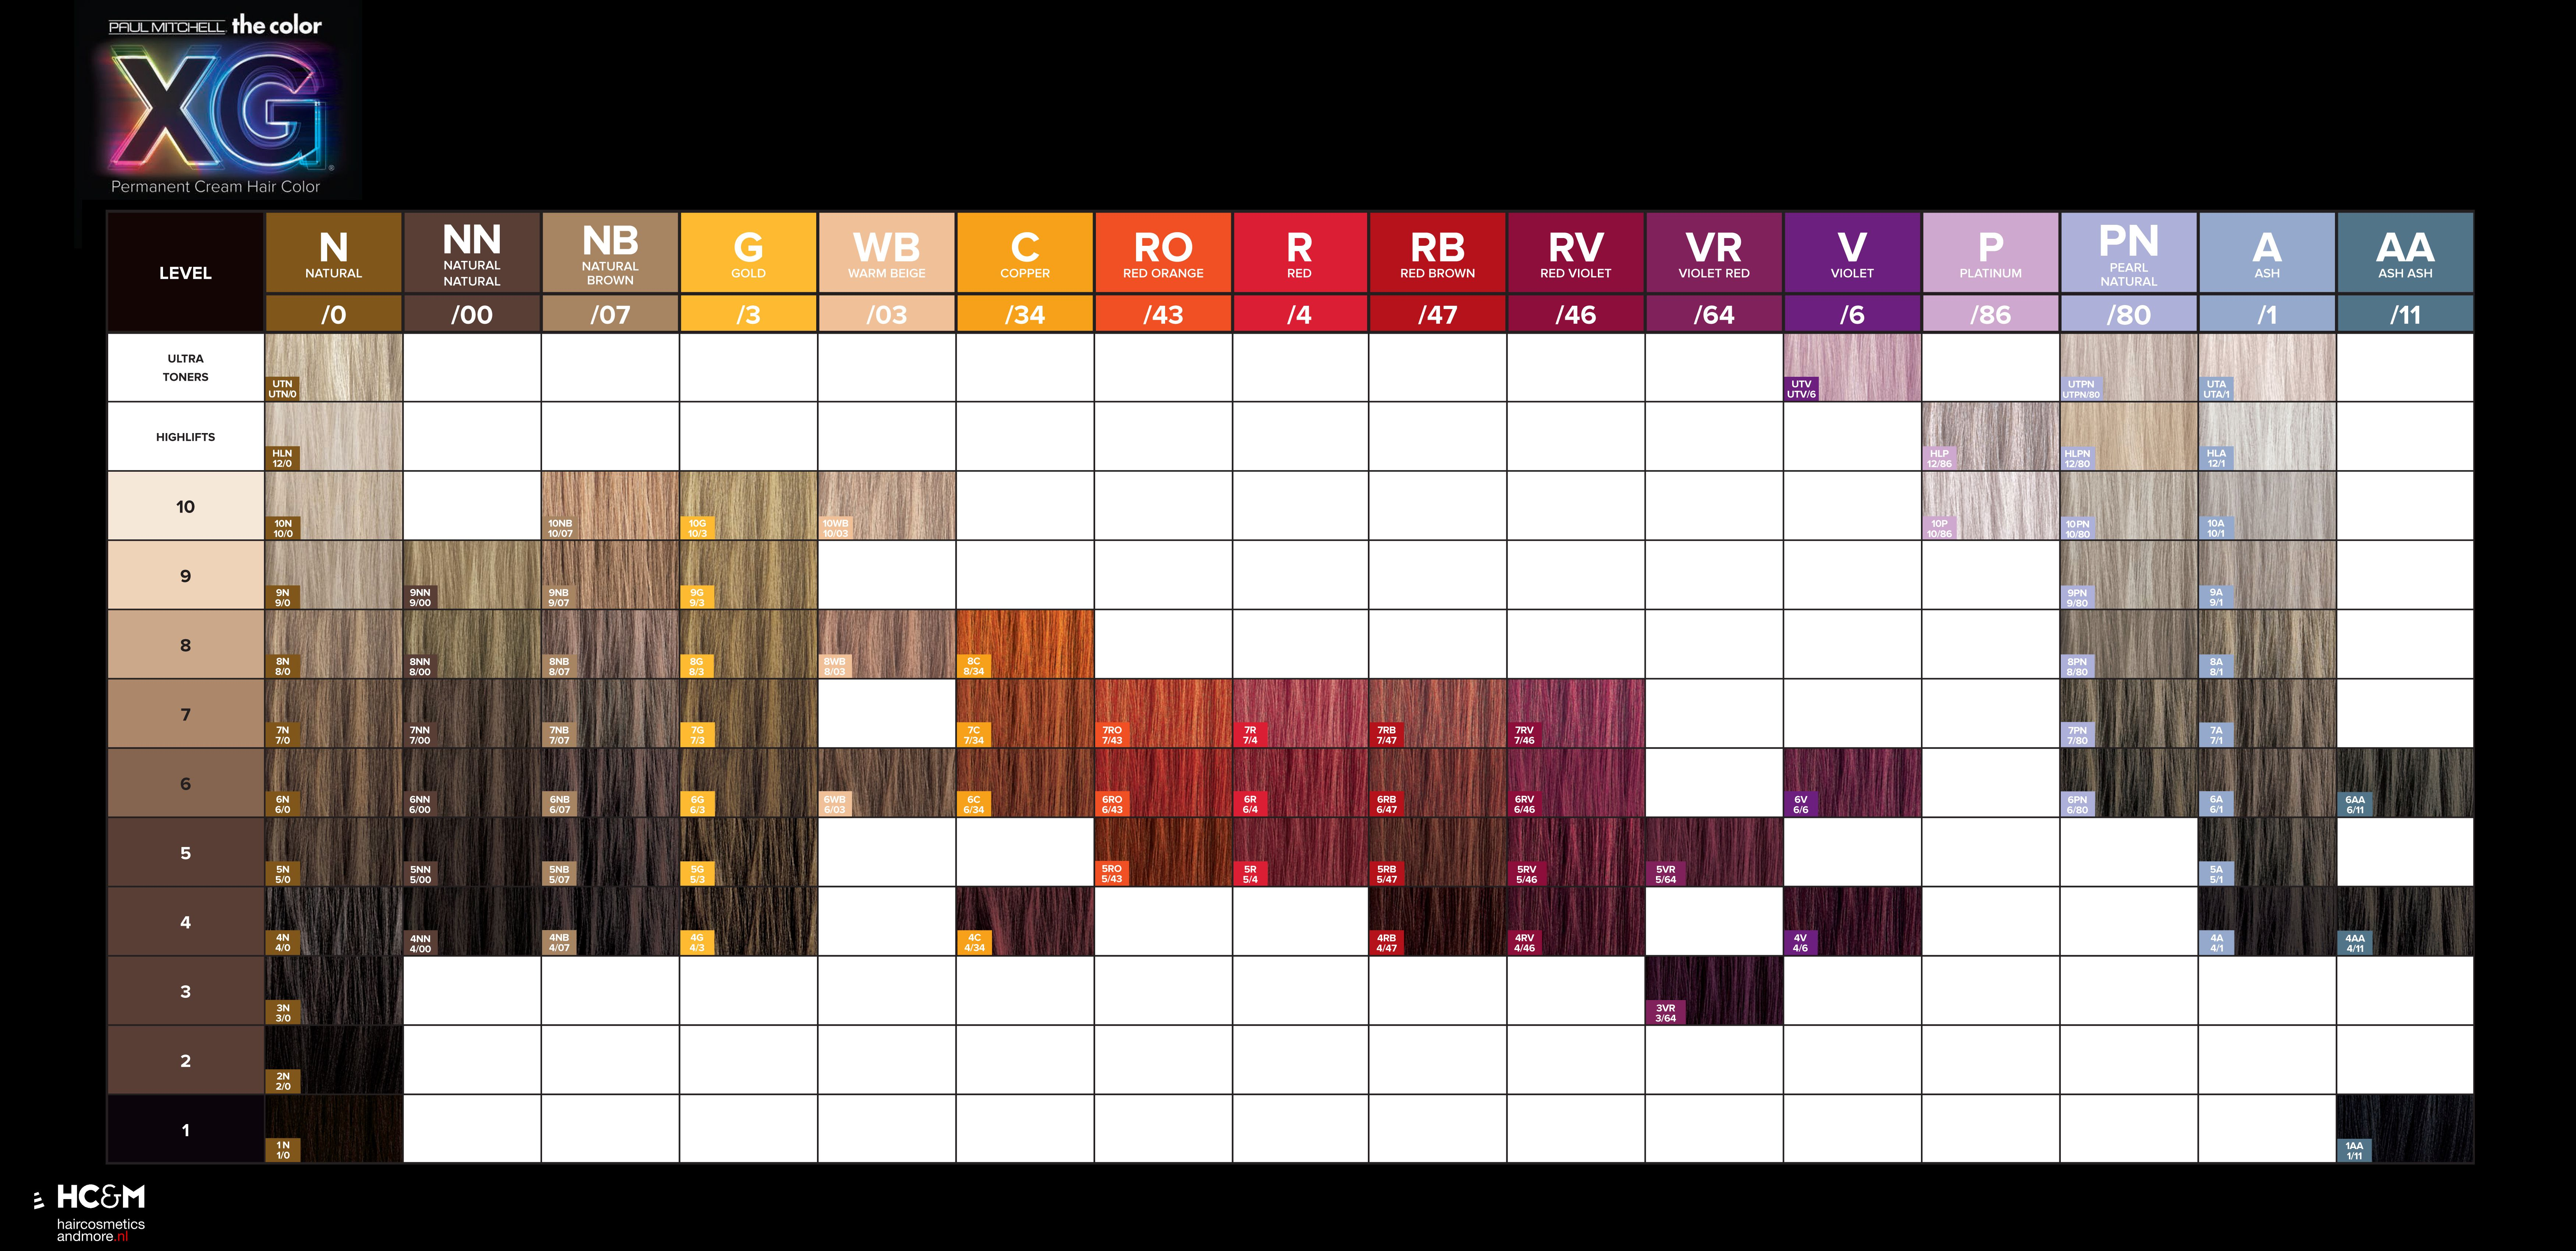 Paul Mitchell the color XG Color Chart July